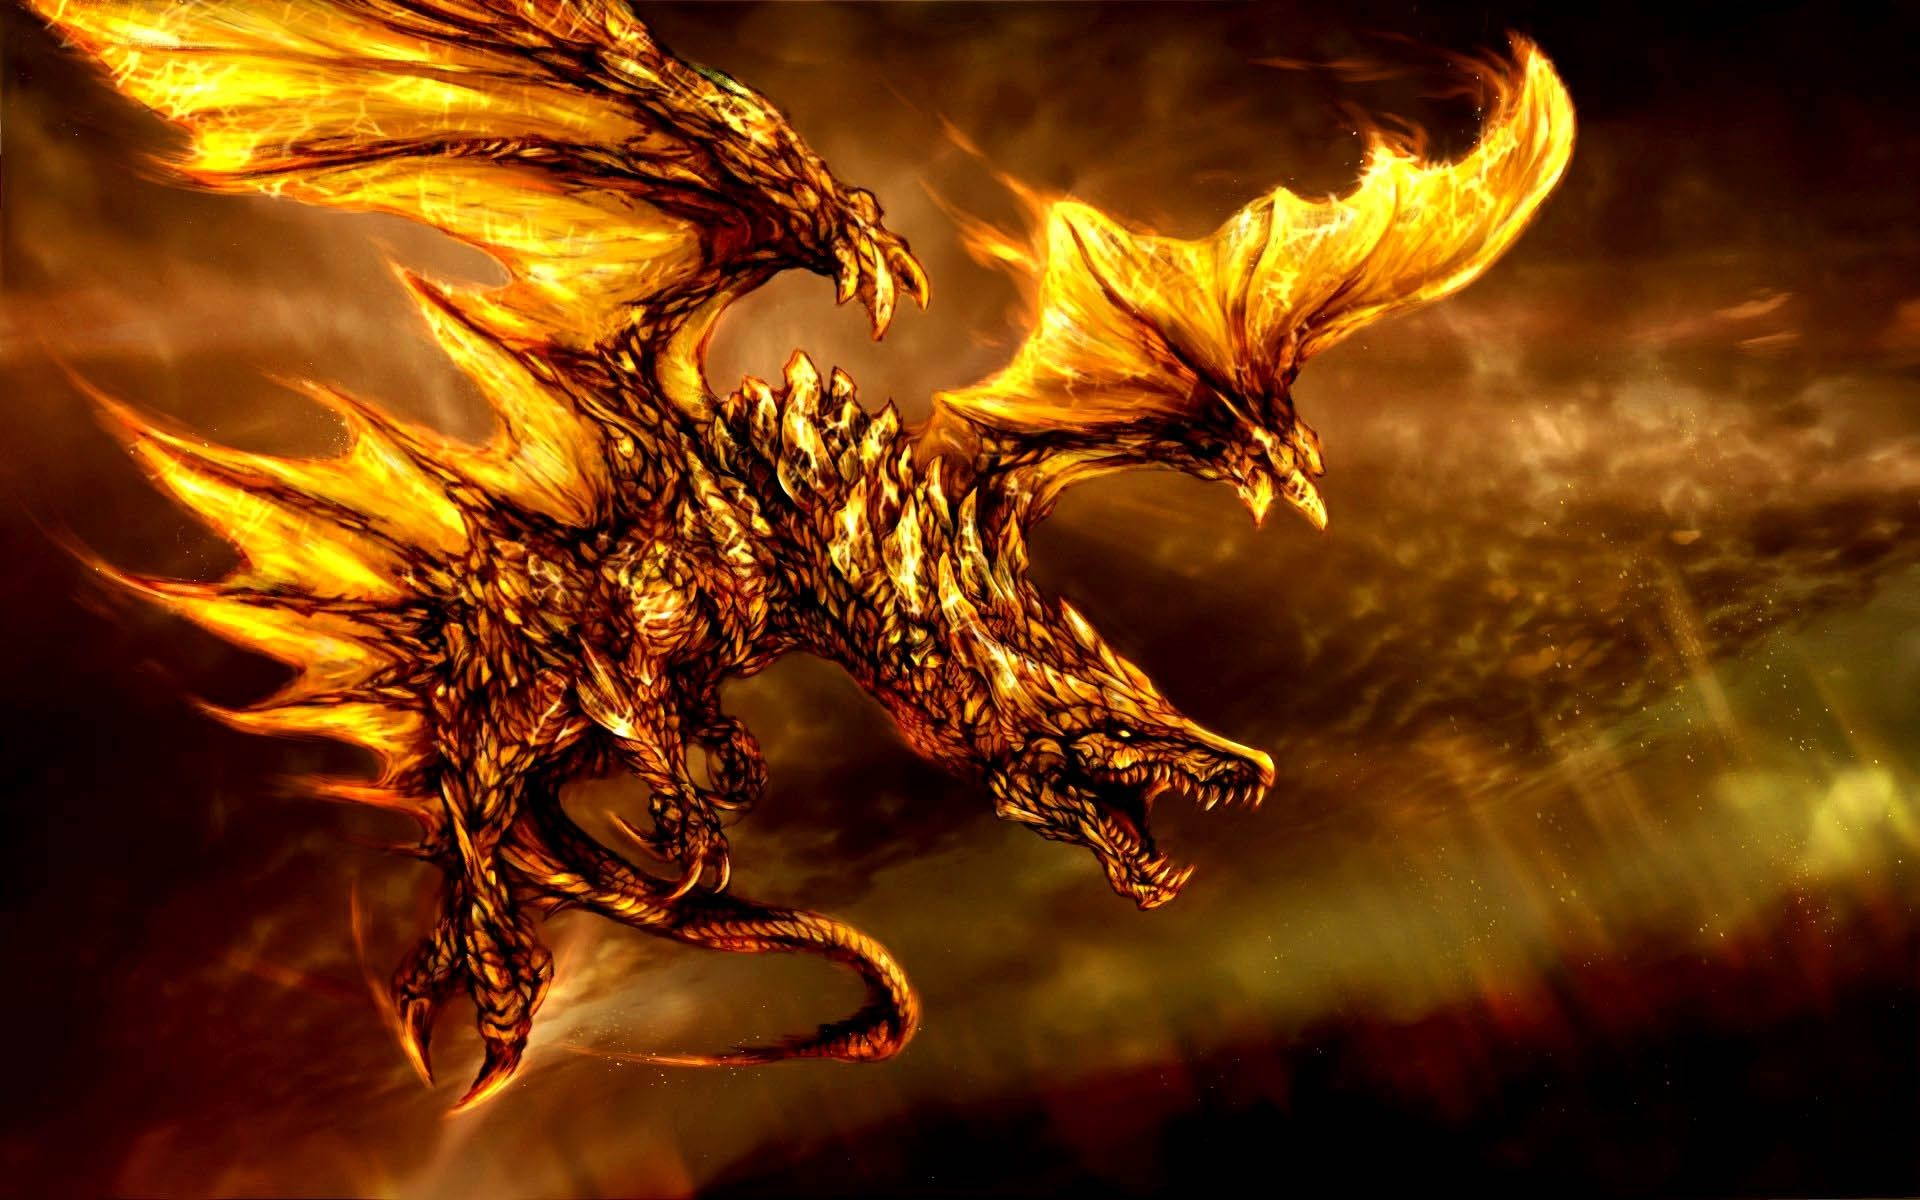 3d dragon wallpapers 71 background pictures - Dragon wallpaper 3d ...